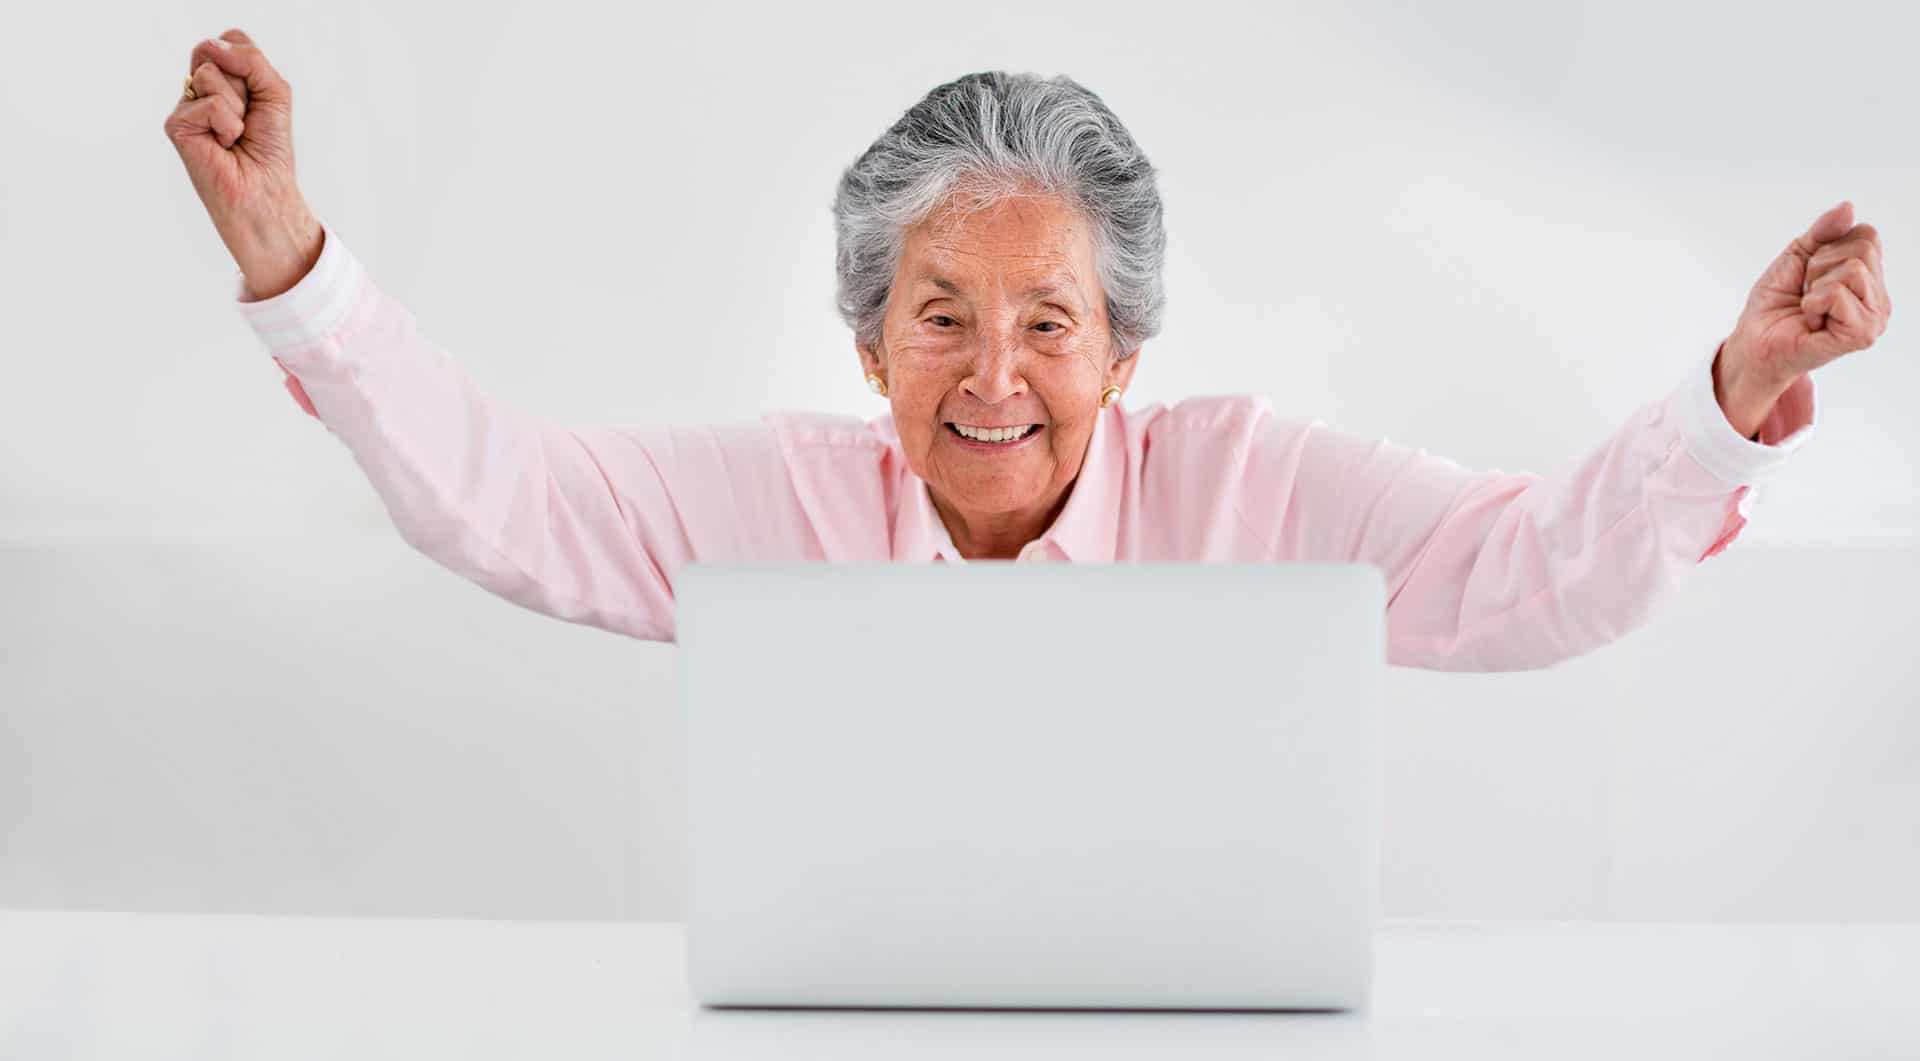 An elderly lady celebrates doing something on her laptop